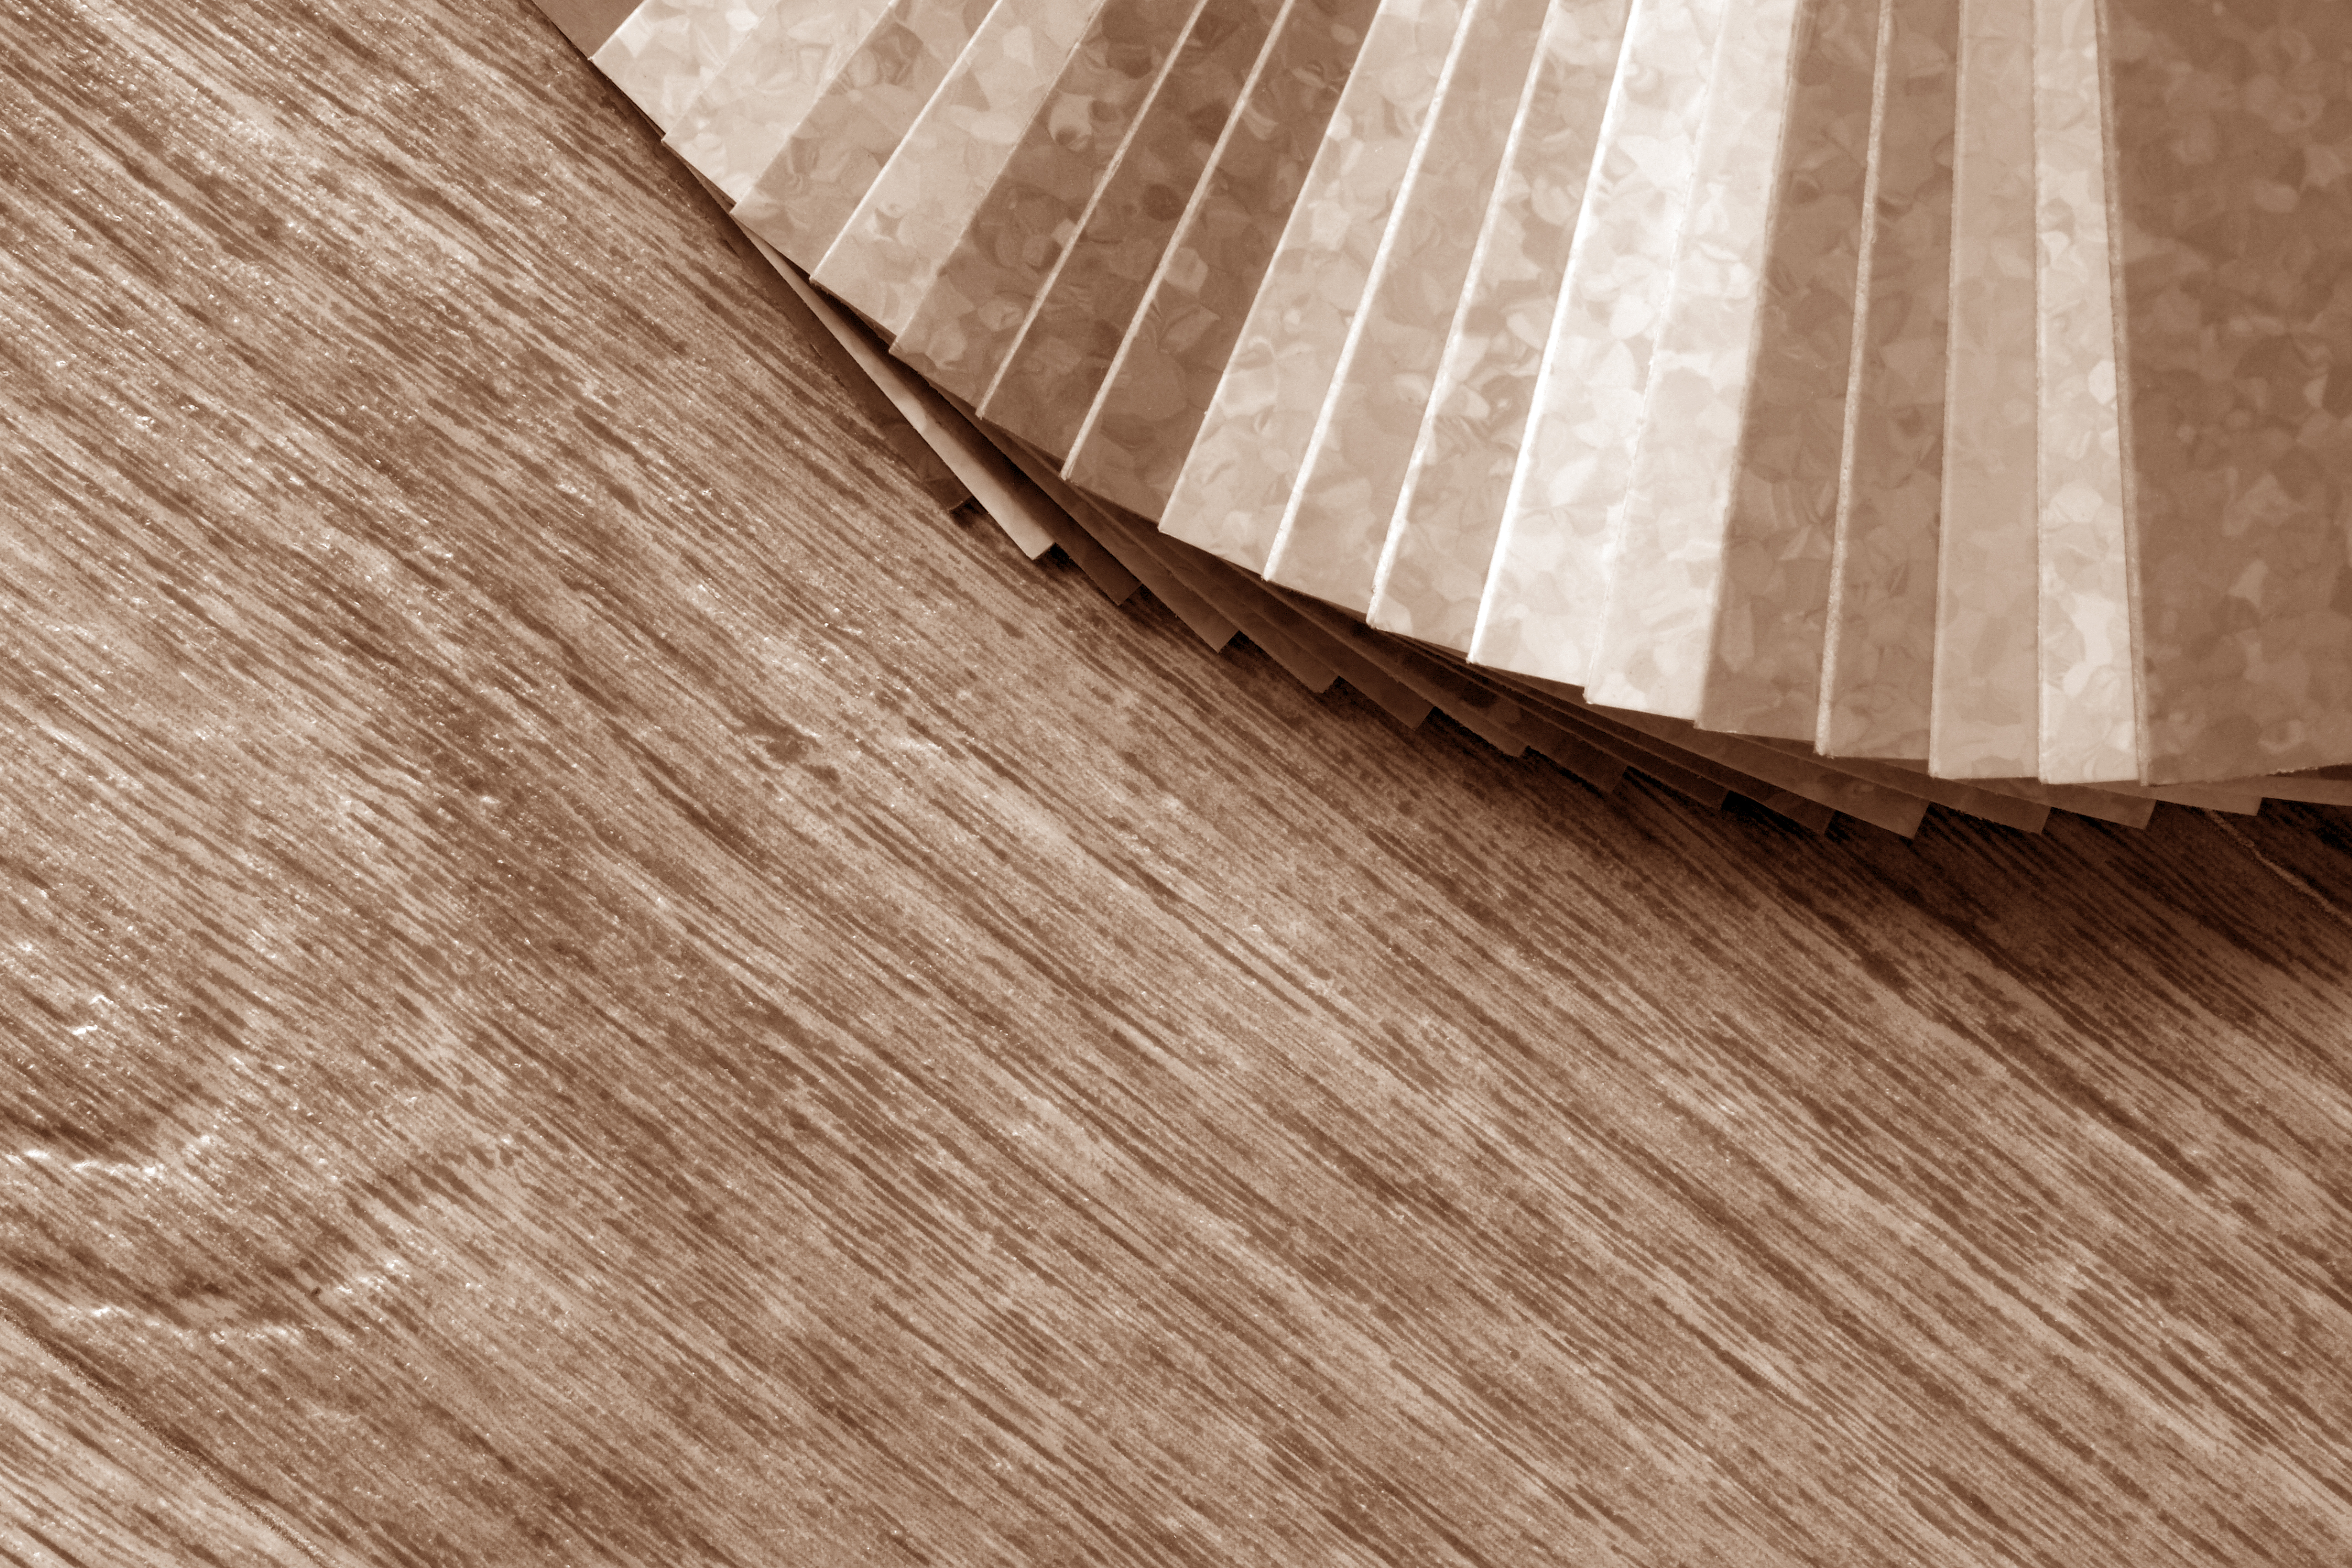 Linoleum Flooring: What You Need to Know